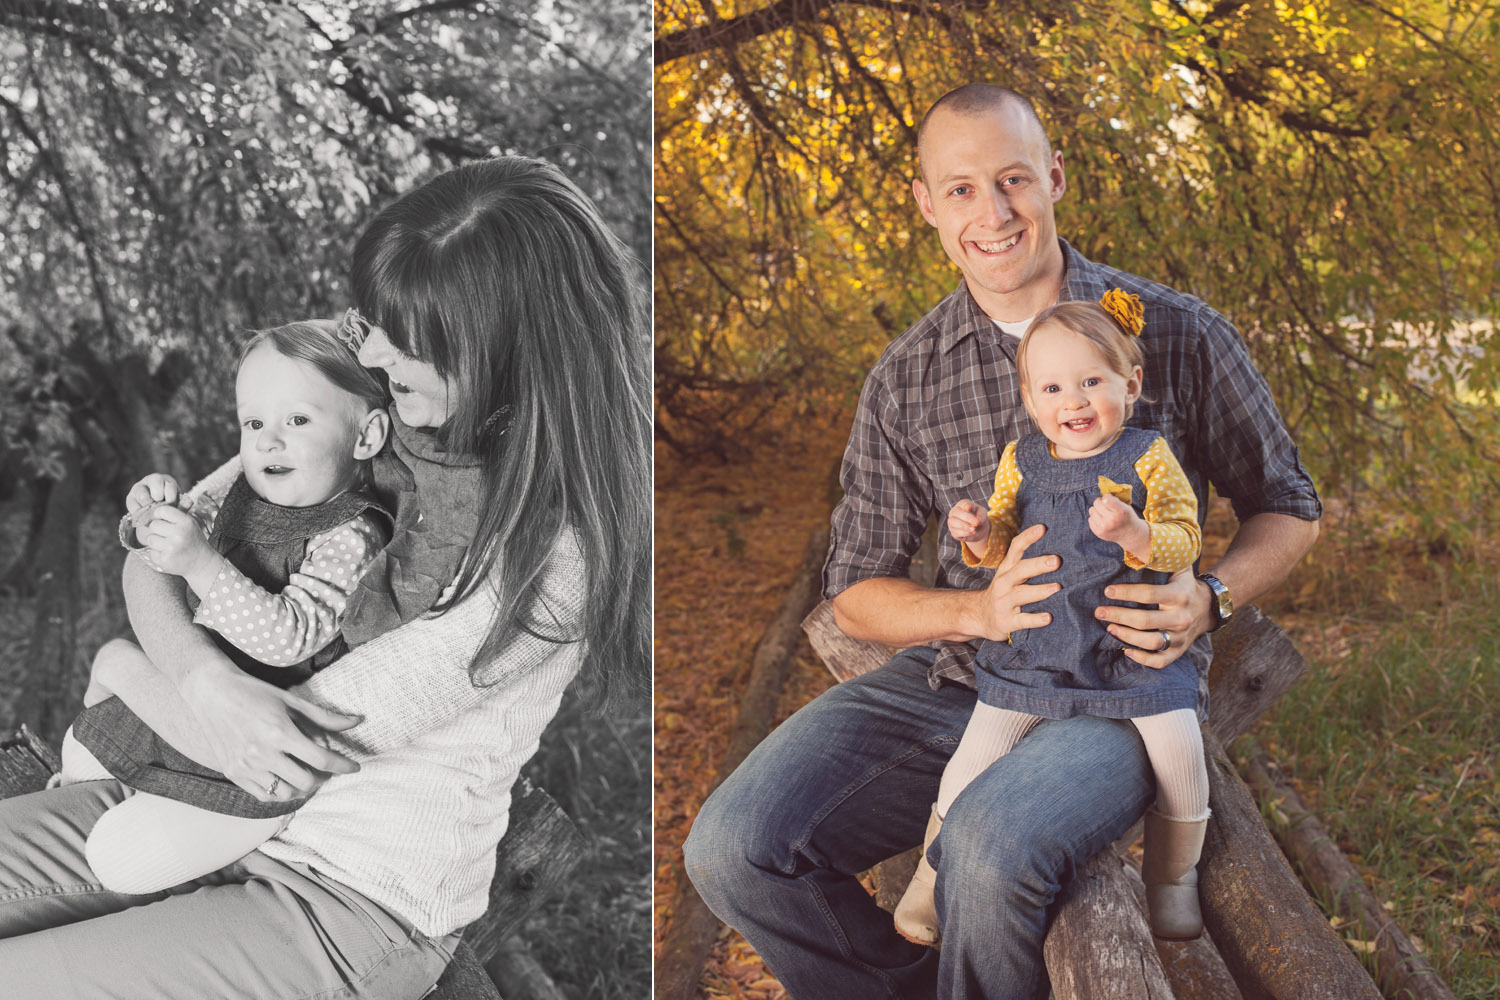 Northern_Utah_Photographer-WatkinsFamilyPhotos-18.jpg